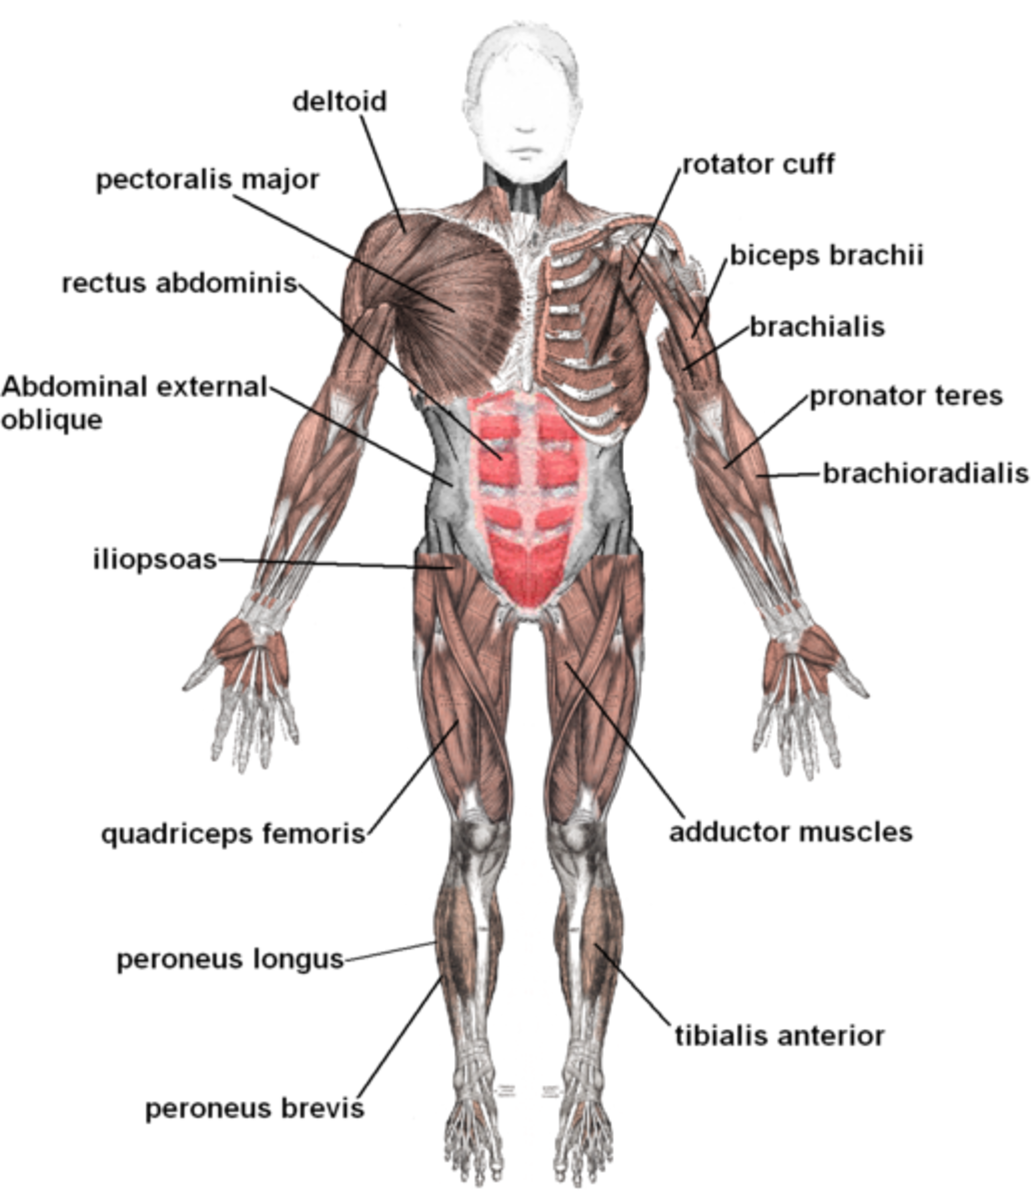 Human Muscular System, labeling on the front view. Image Credit: Mikael Häggström via Wikimedia Commons